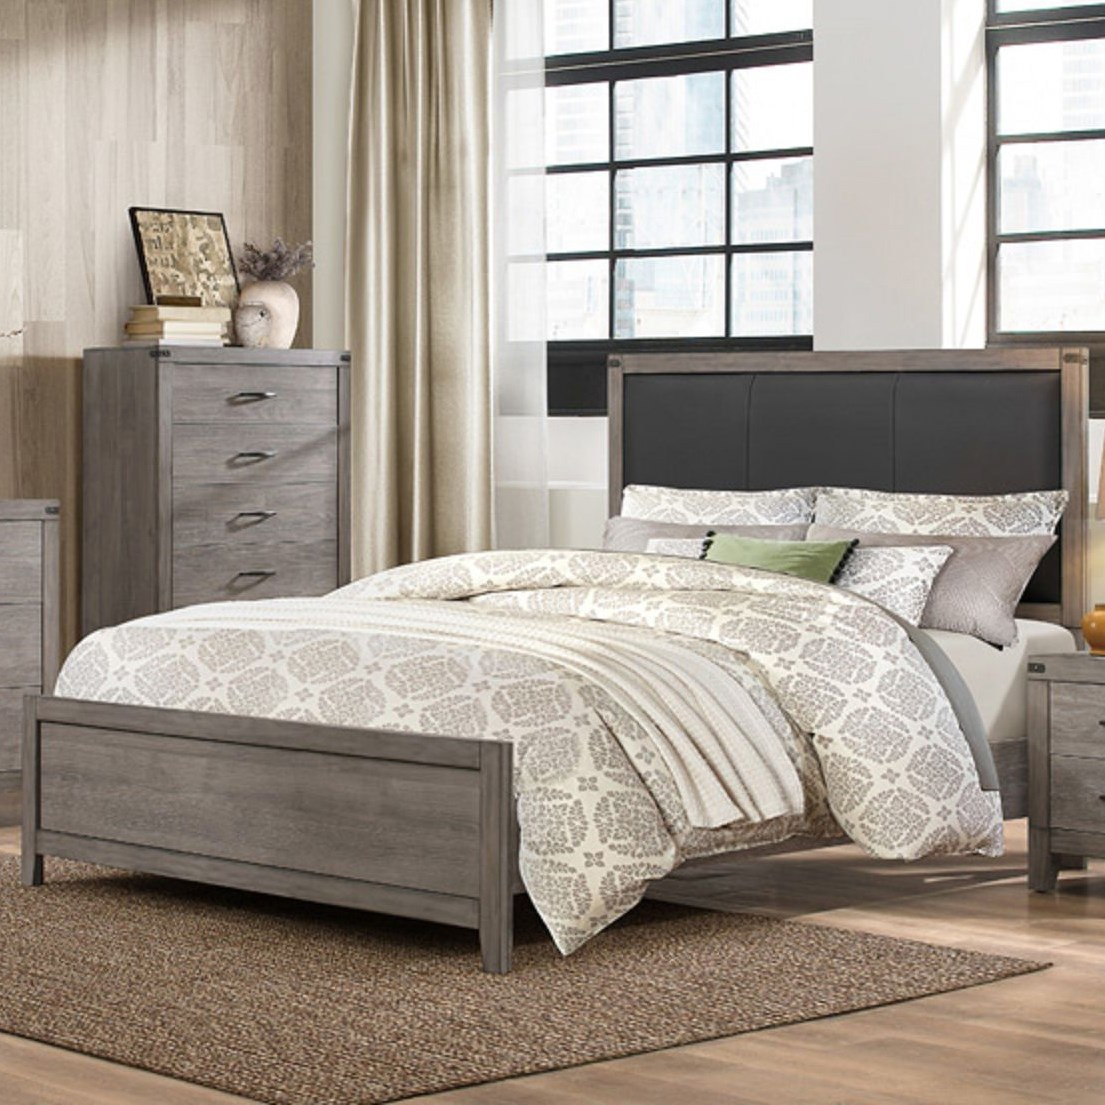 2042 Contemporary Queen Bed by Homelegance at Lindy's Furniture Company